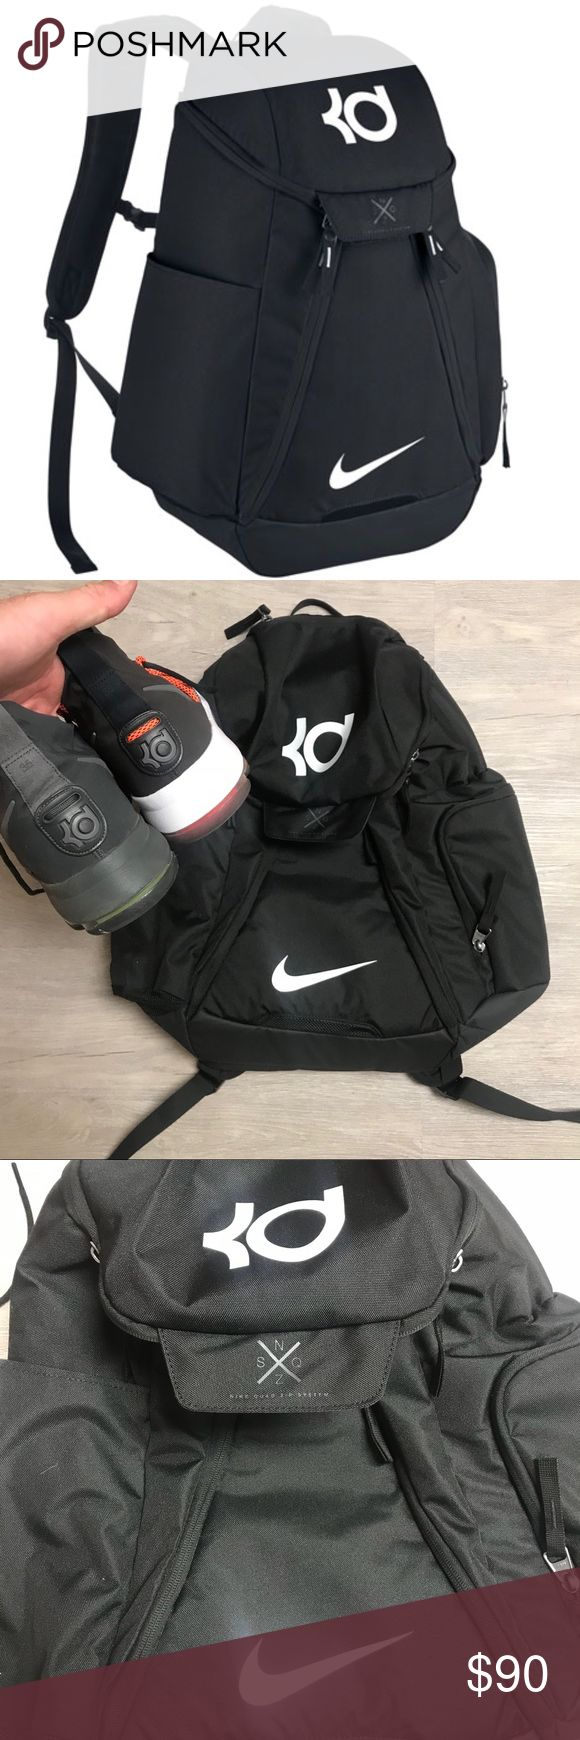 "NWT NIKE🏀🎒 KD HOOPS ELITE BACKPACK VERY SPACIOU BRAND NEW NIKE 🏀🎒🔥KD HOOPS ELITE BACKPACK ""LOTS OF ROOM"" CAN HOLD BALL AND SHOES ETC. 100% AUTHENTIC.   ""NO TRADES""  ALL DISRESPECTFUL OFFERS GET BLOCKED!!!   ALSO, I DO NOT DISCUSS PRICING IN THE COMMENTS EVER!!!!  SHIPS SAME OR NEXT DAY FROM MY SMOKE FREE HOME.   REASONABLE OFFERS WILL ONLY BE CONSIDERED THROUGH THE OFFER BUTTON. ANY OFFERS IN COMMENTS WILL BE IGNORED.   BUNDLE DISCOUNT SUBJECT TO MY APPROVAL. ✨   TRUSTED RELIABLE…"